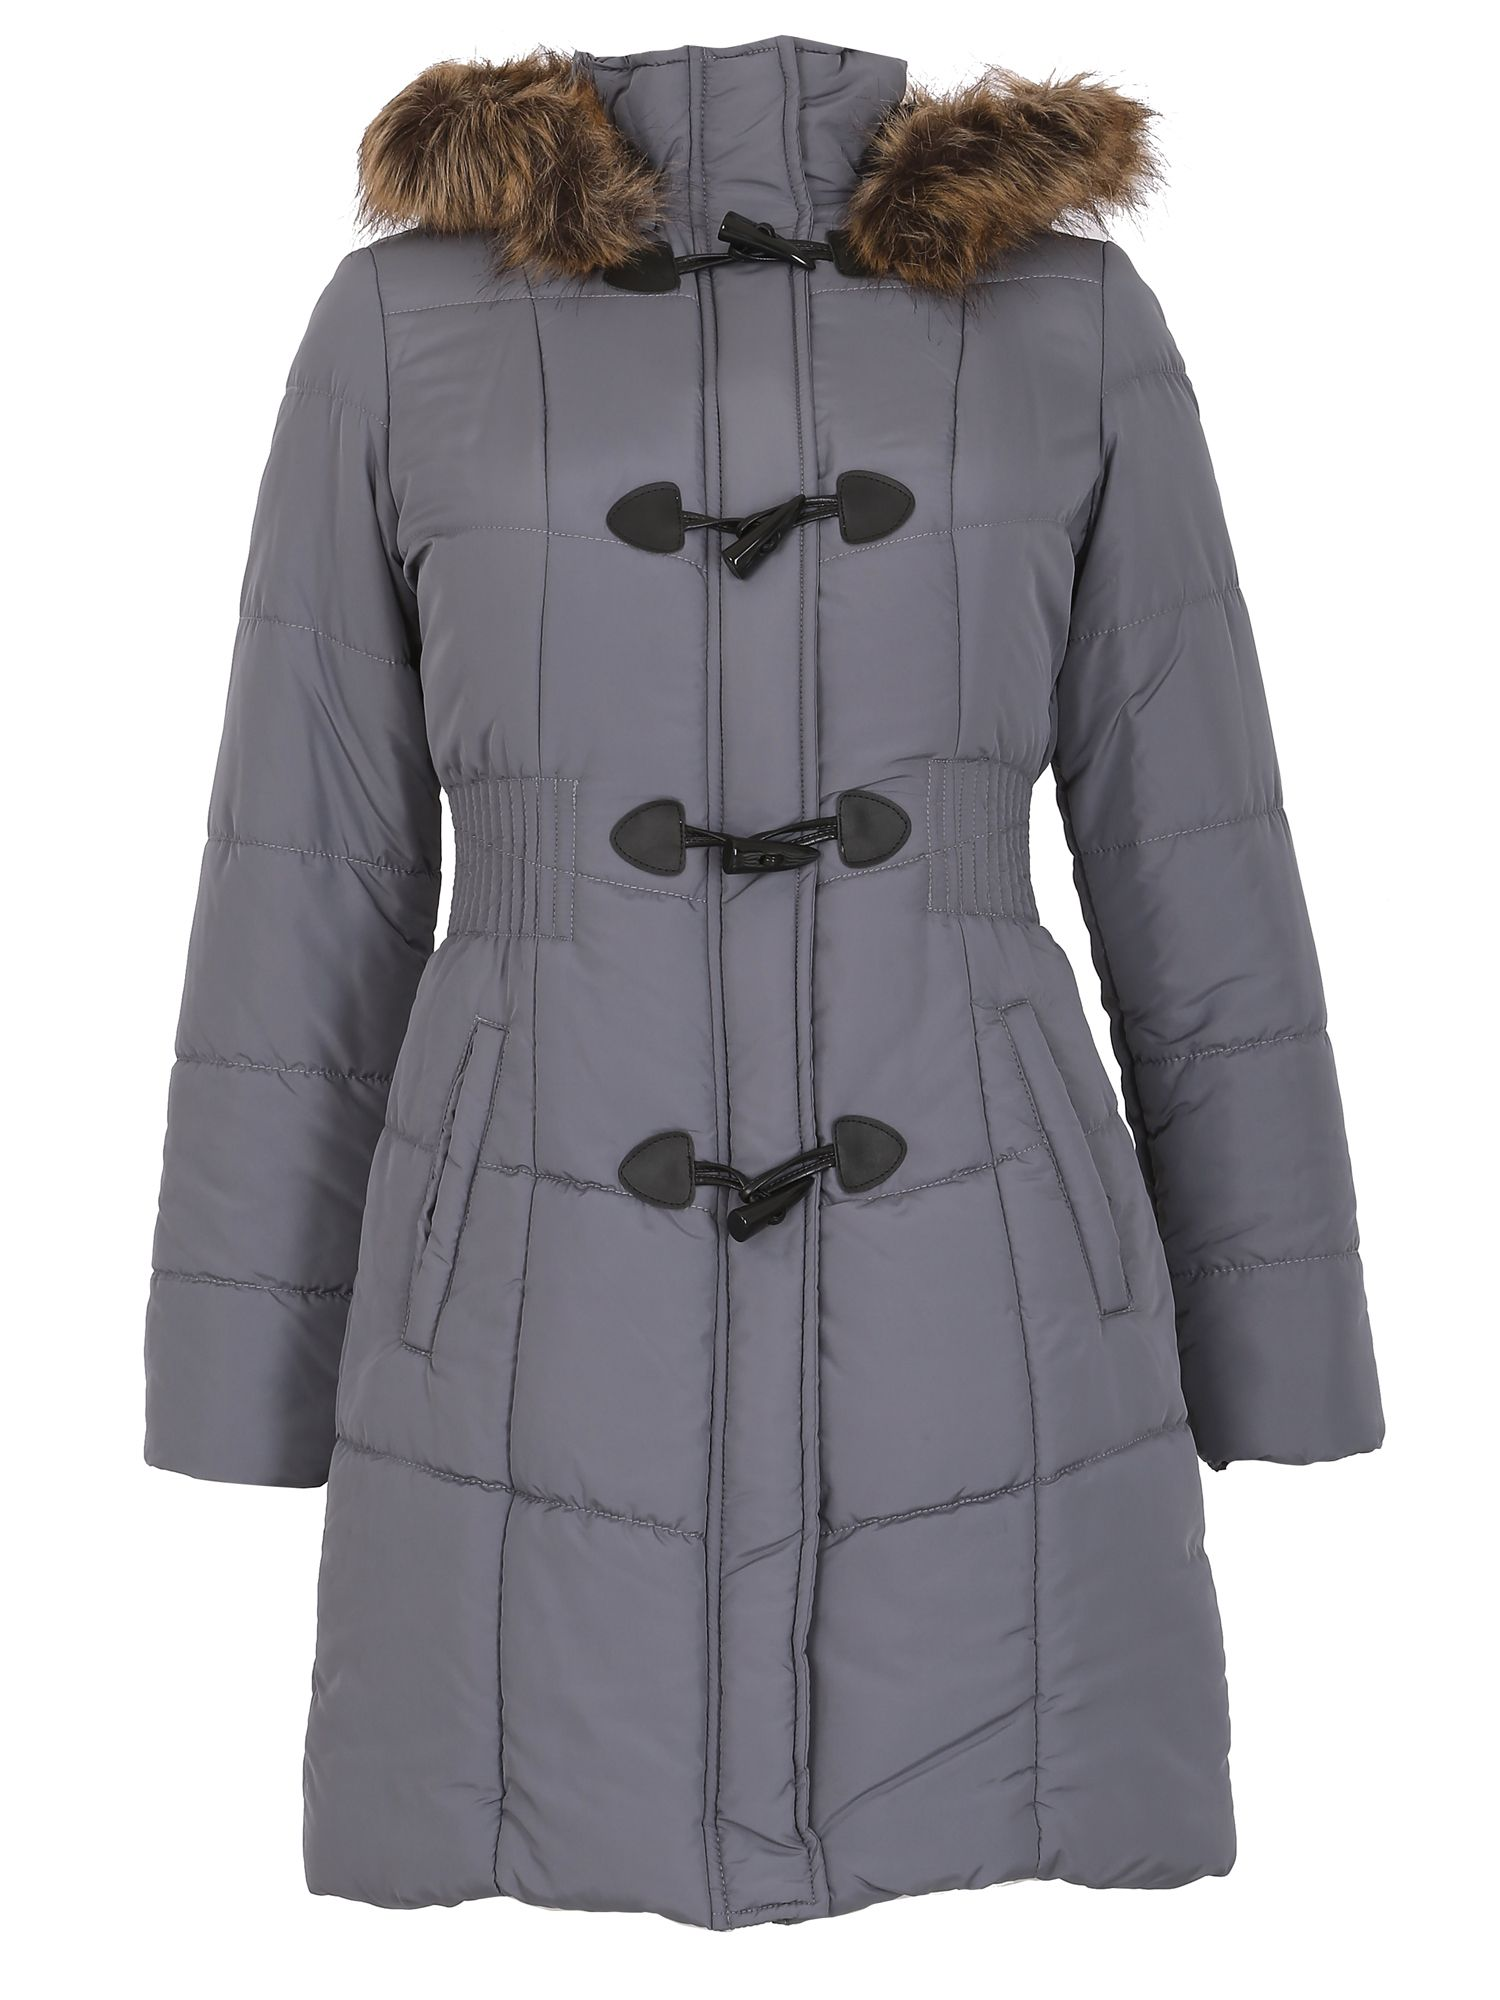 David Barry David Barry Womens Warm Padded Parka Coat, Charcoal